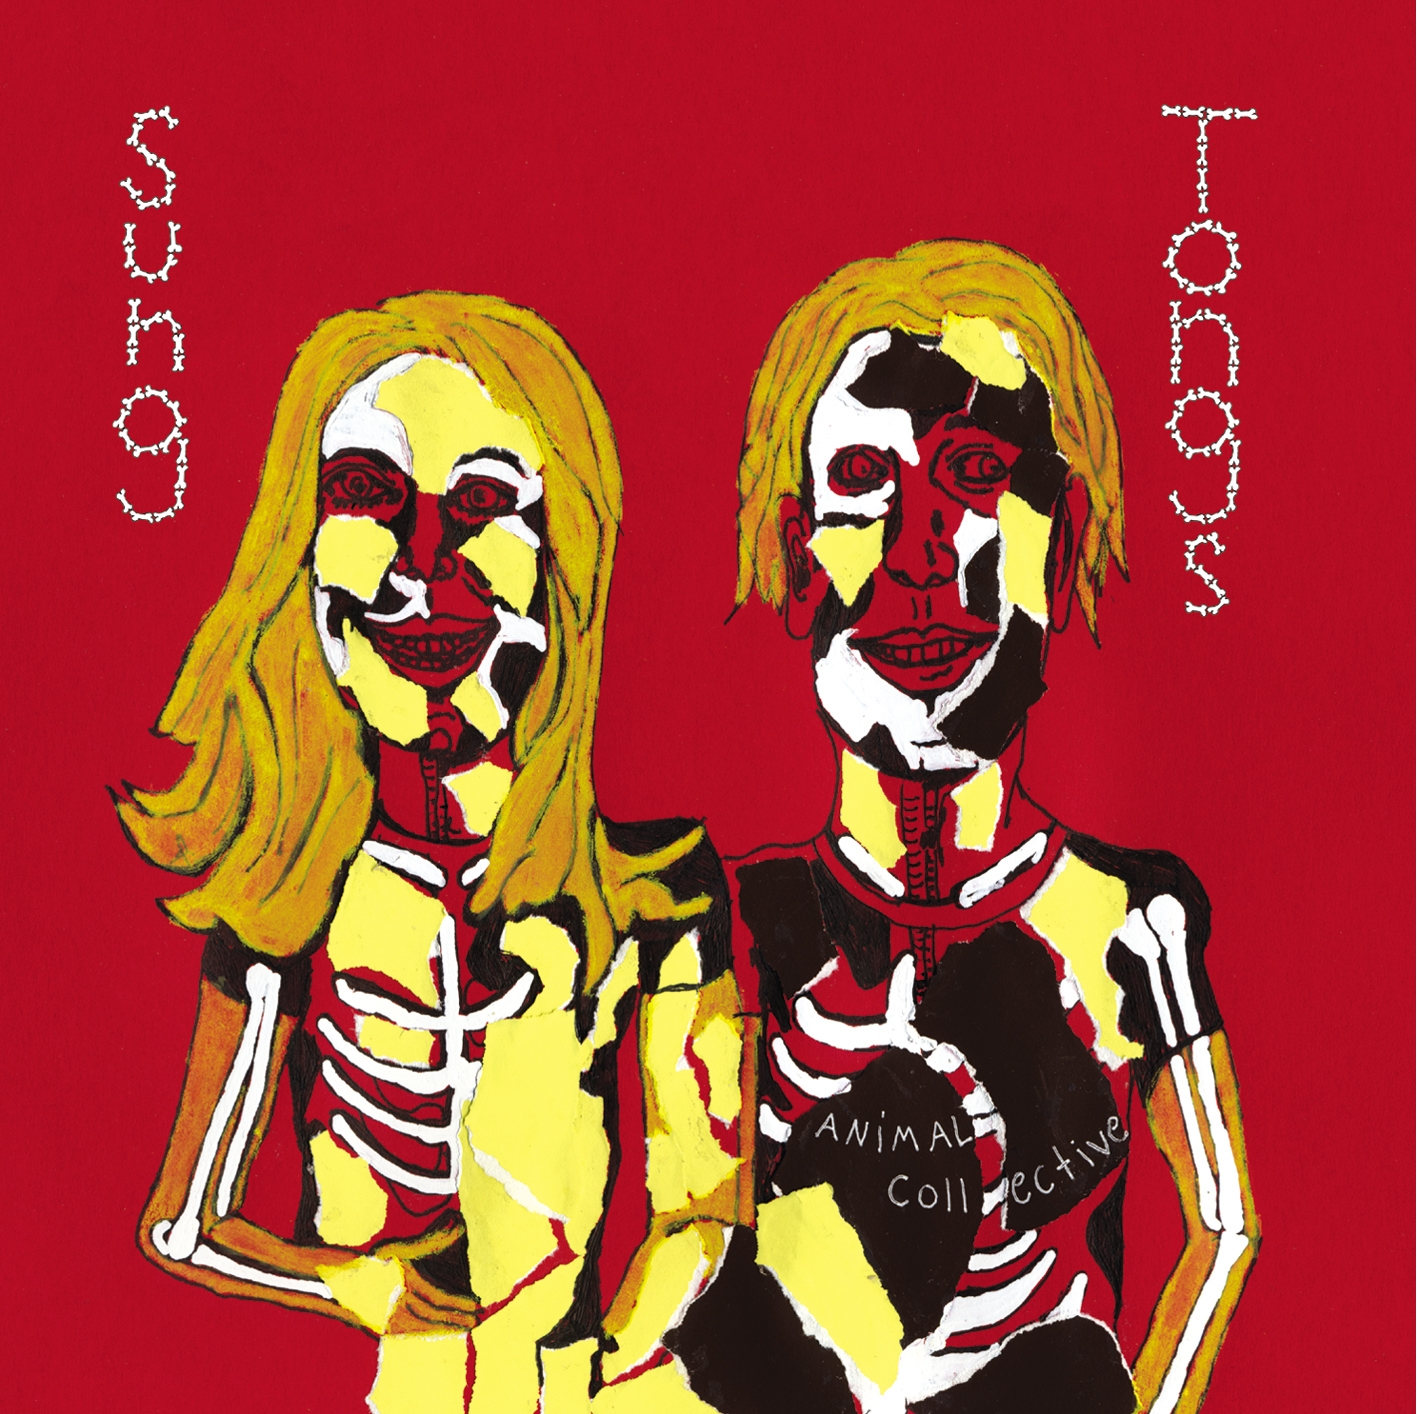 Animal Collective Sung Tongs review